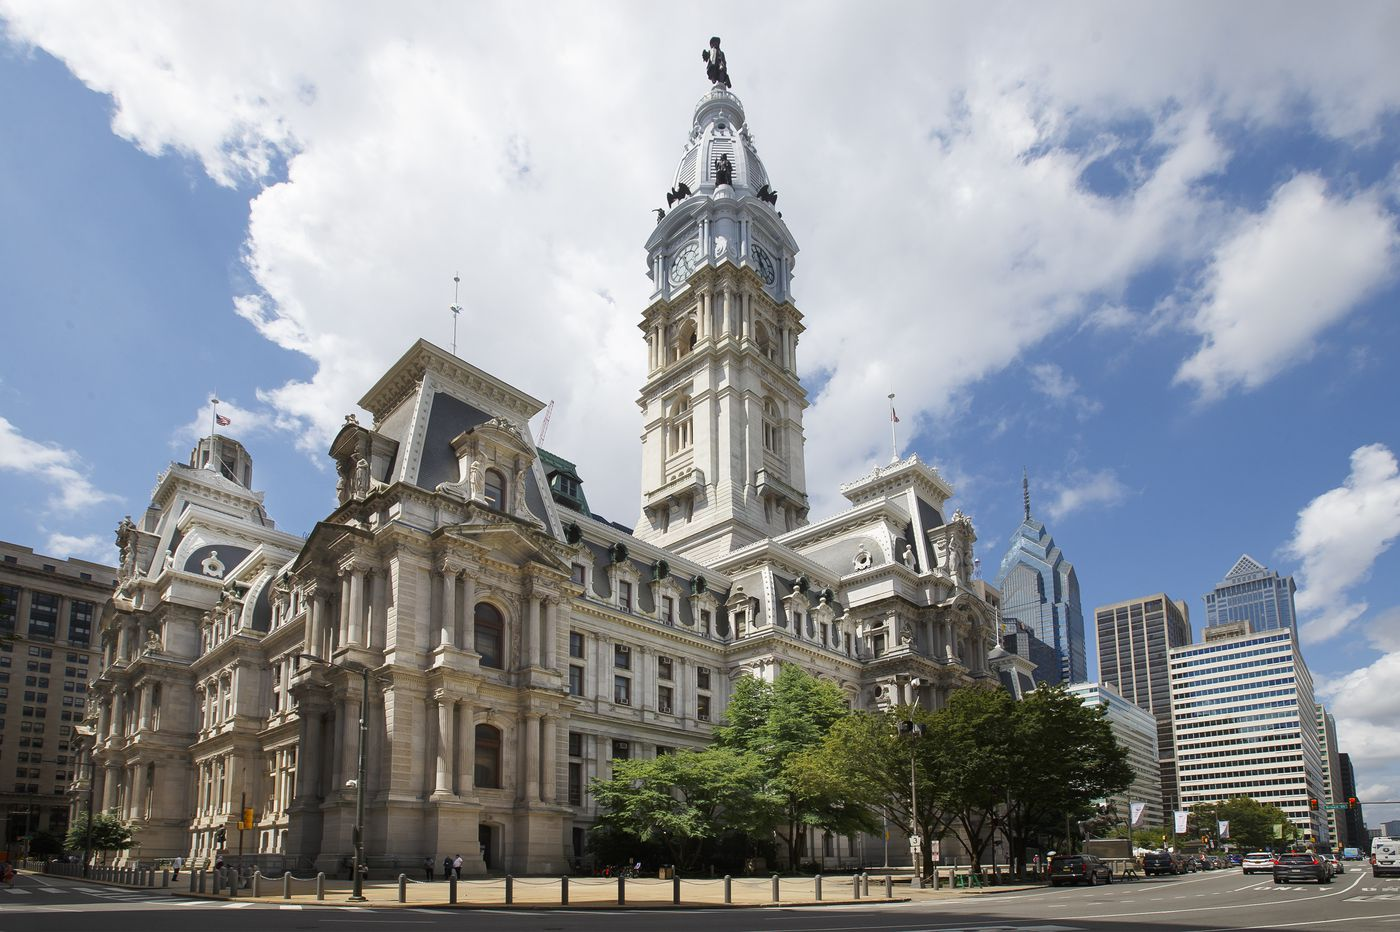 Philly's new payroll system to give workers a pay bump: 'That sounds crazy but …'